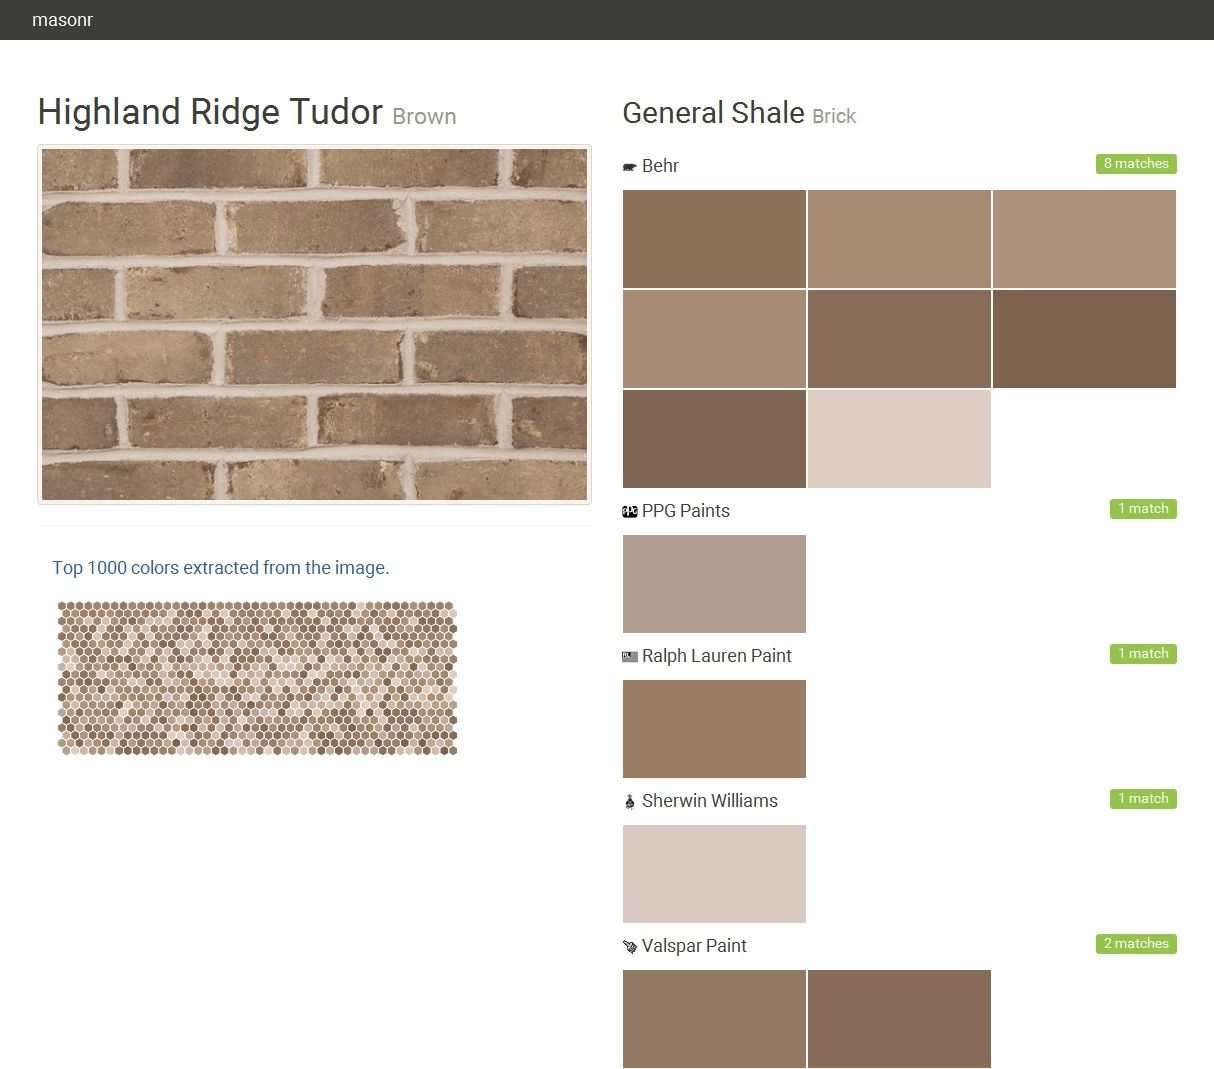 Highland Ridge Tudor Brown Brick General Shale Behr Ppg Paints Ralph Lauren Paint Sherwin Williams Valspar Click The Gray Visit On To See